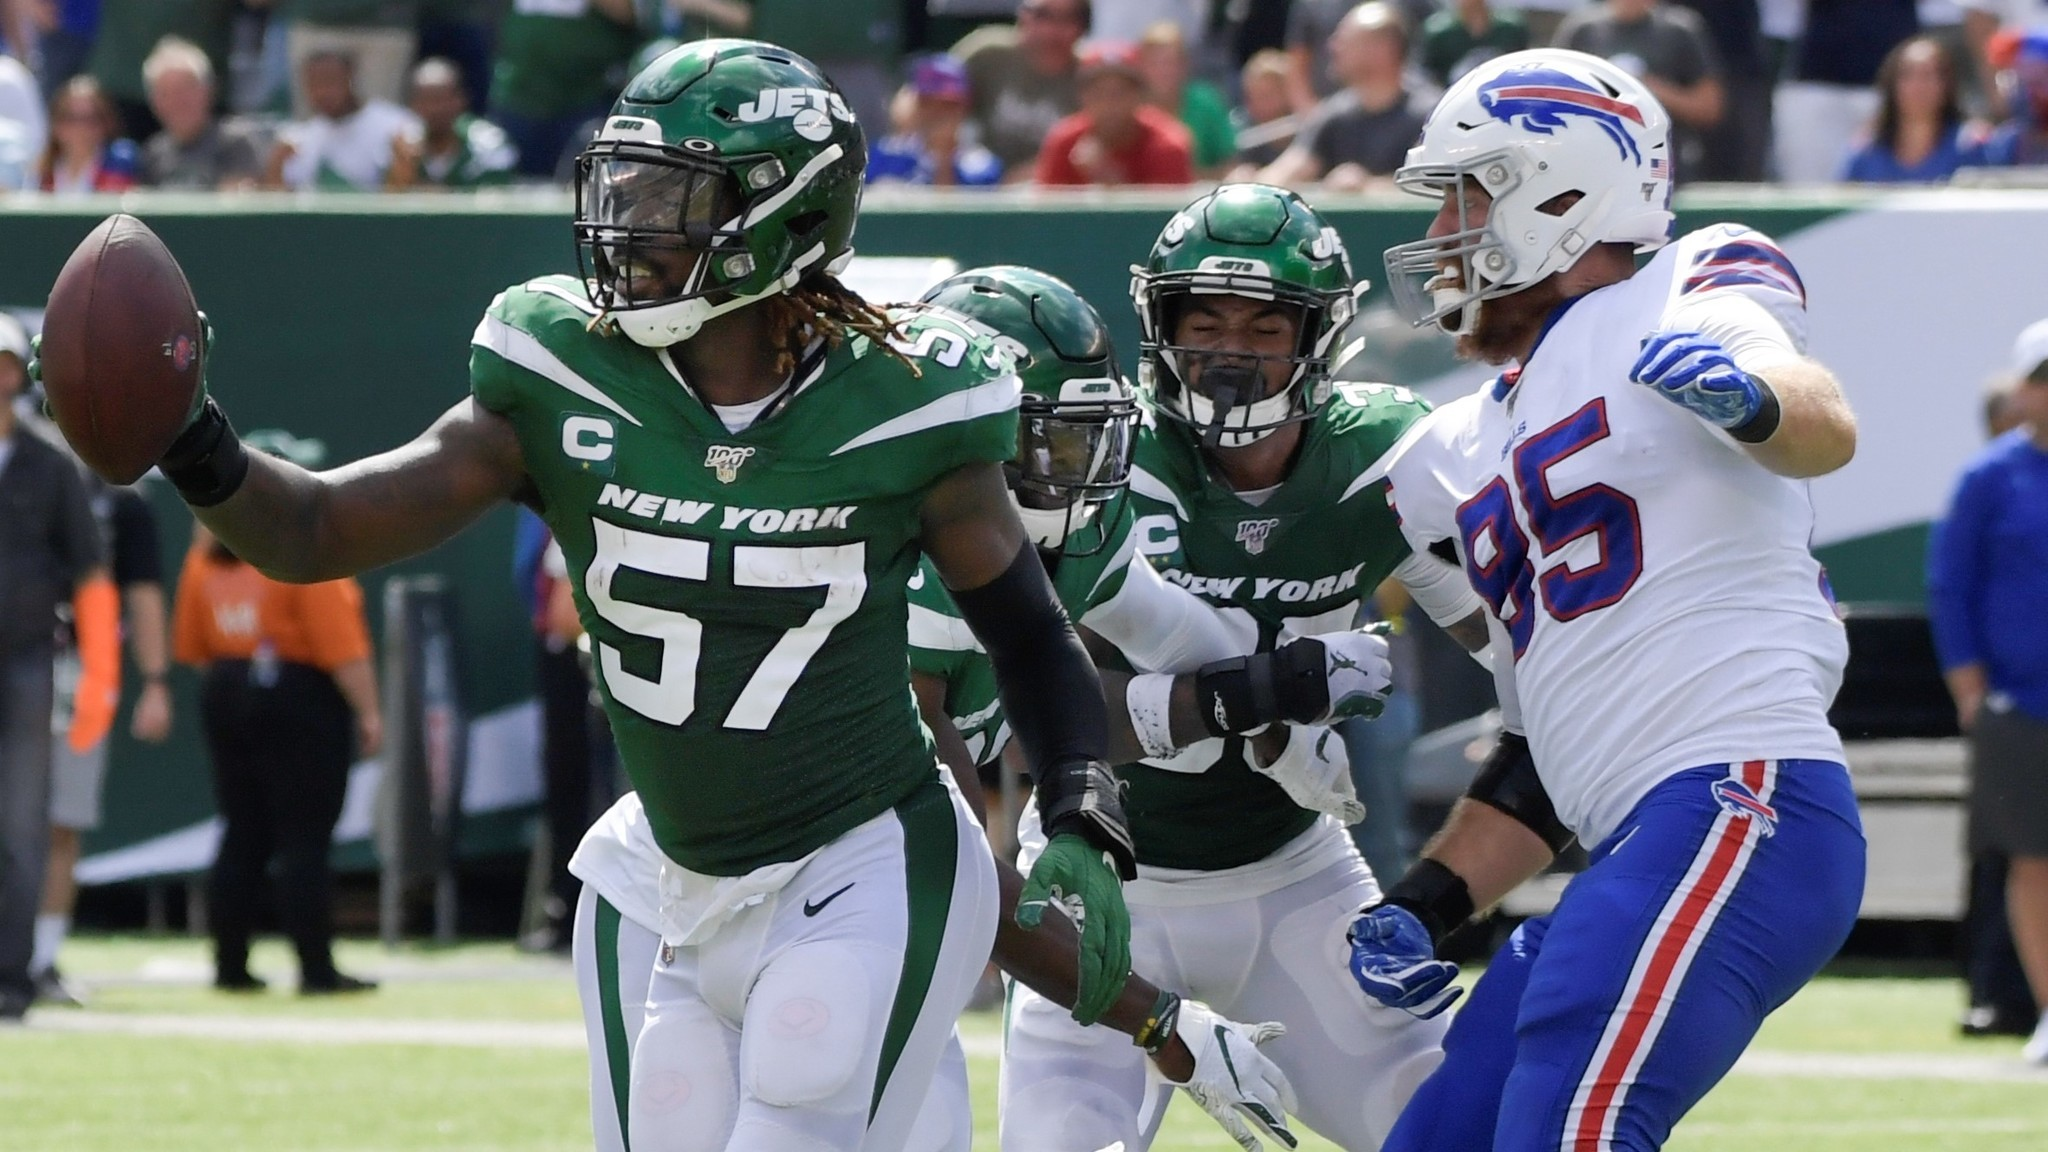 C.J. Mosley says he'll play against Patriots on Monday, giving Jets defense huge boost